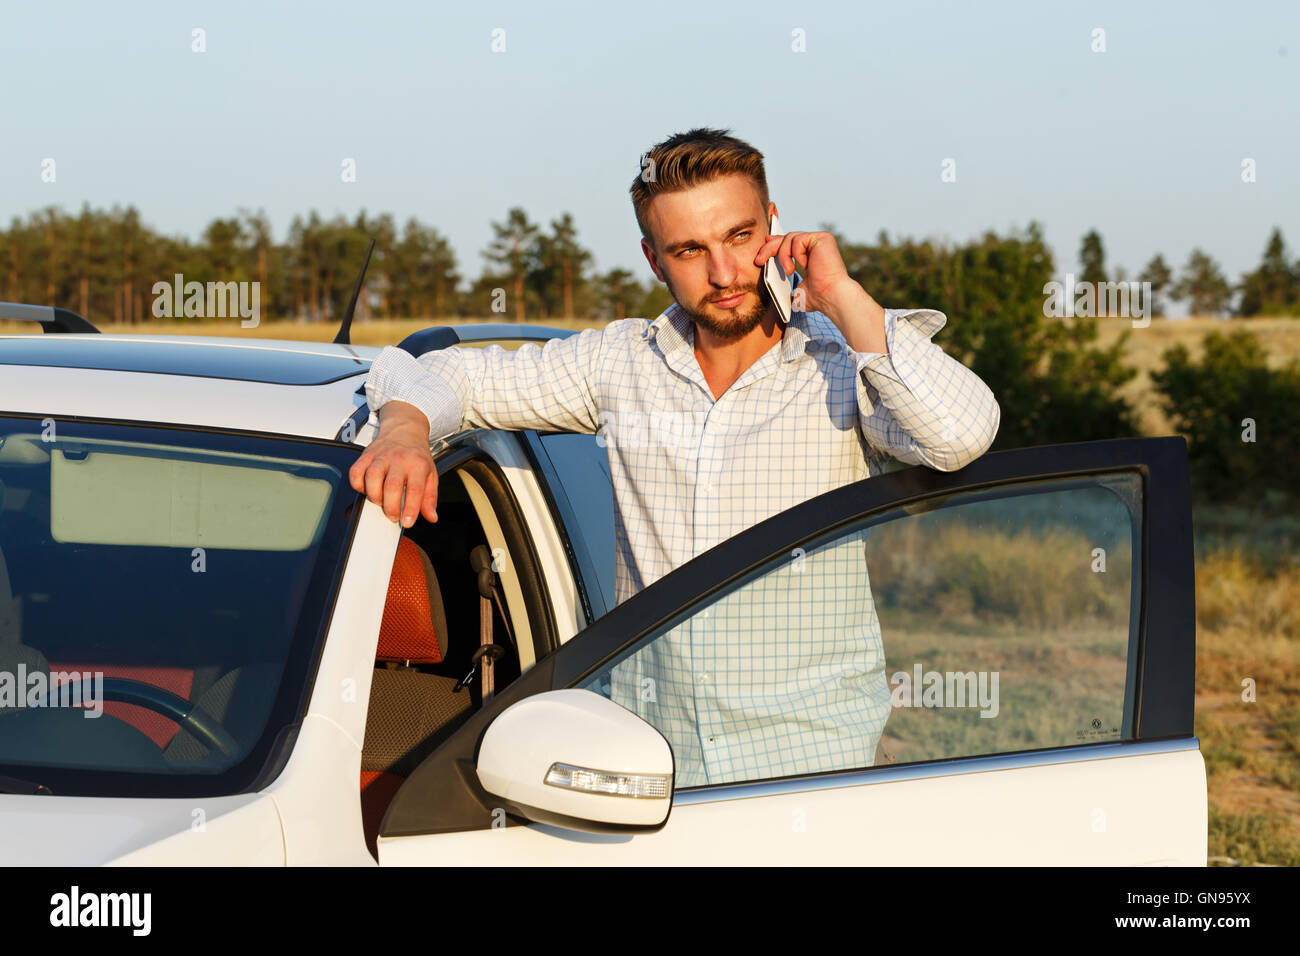 Young handsome man opened the door of his car. Man talking on the phone. Always connected. - Stock Image